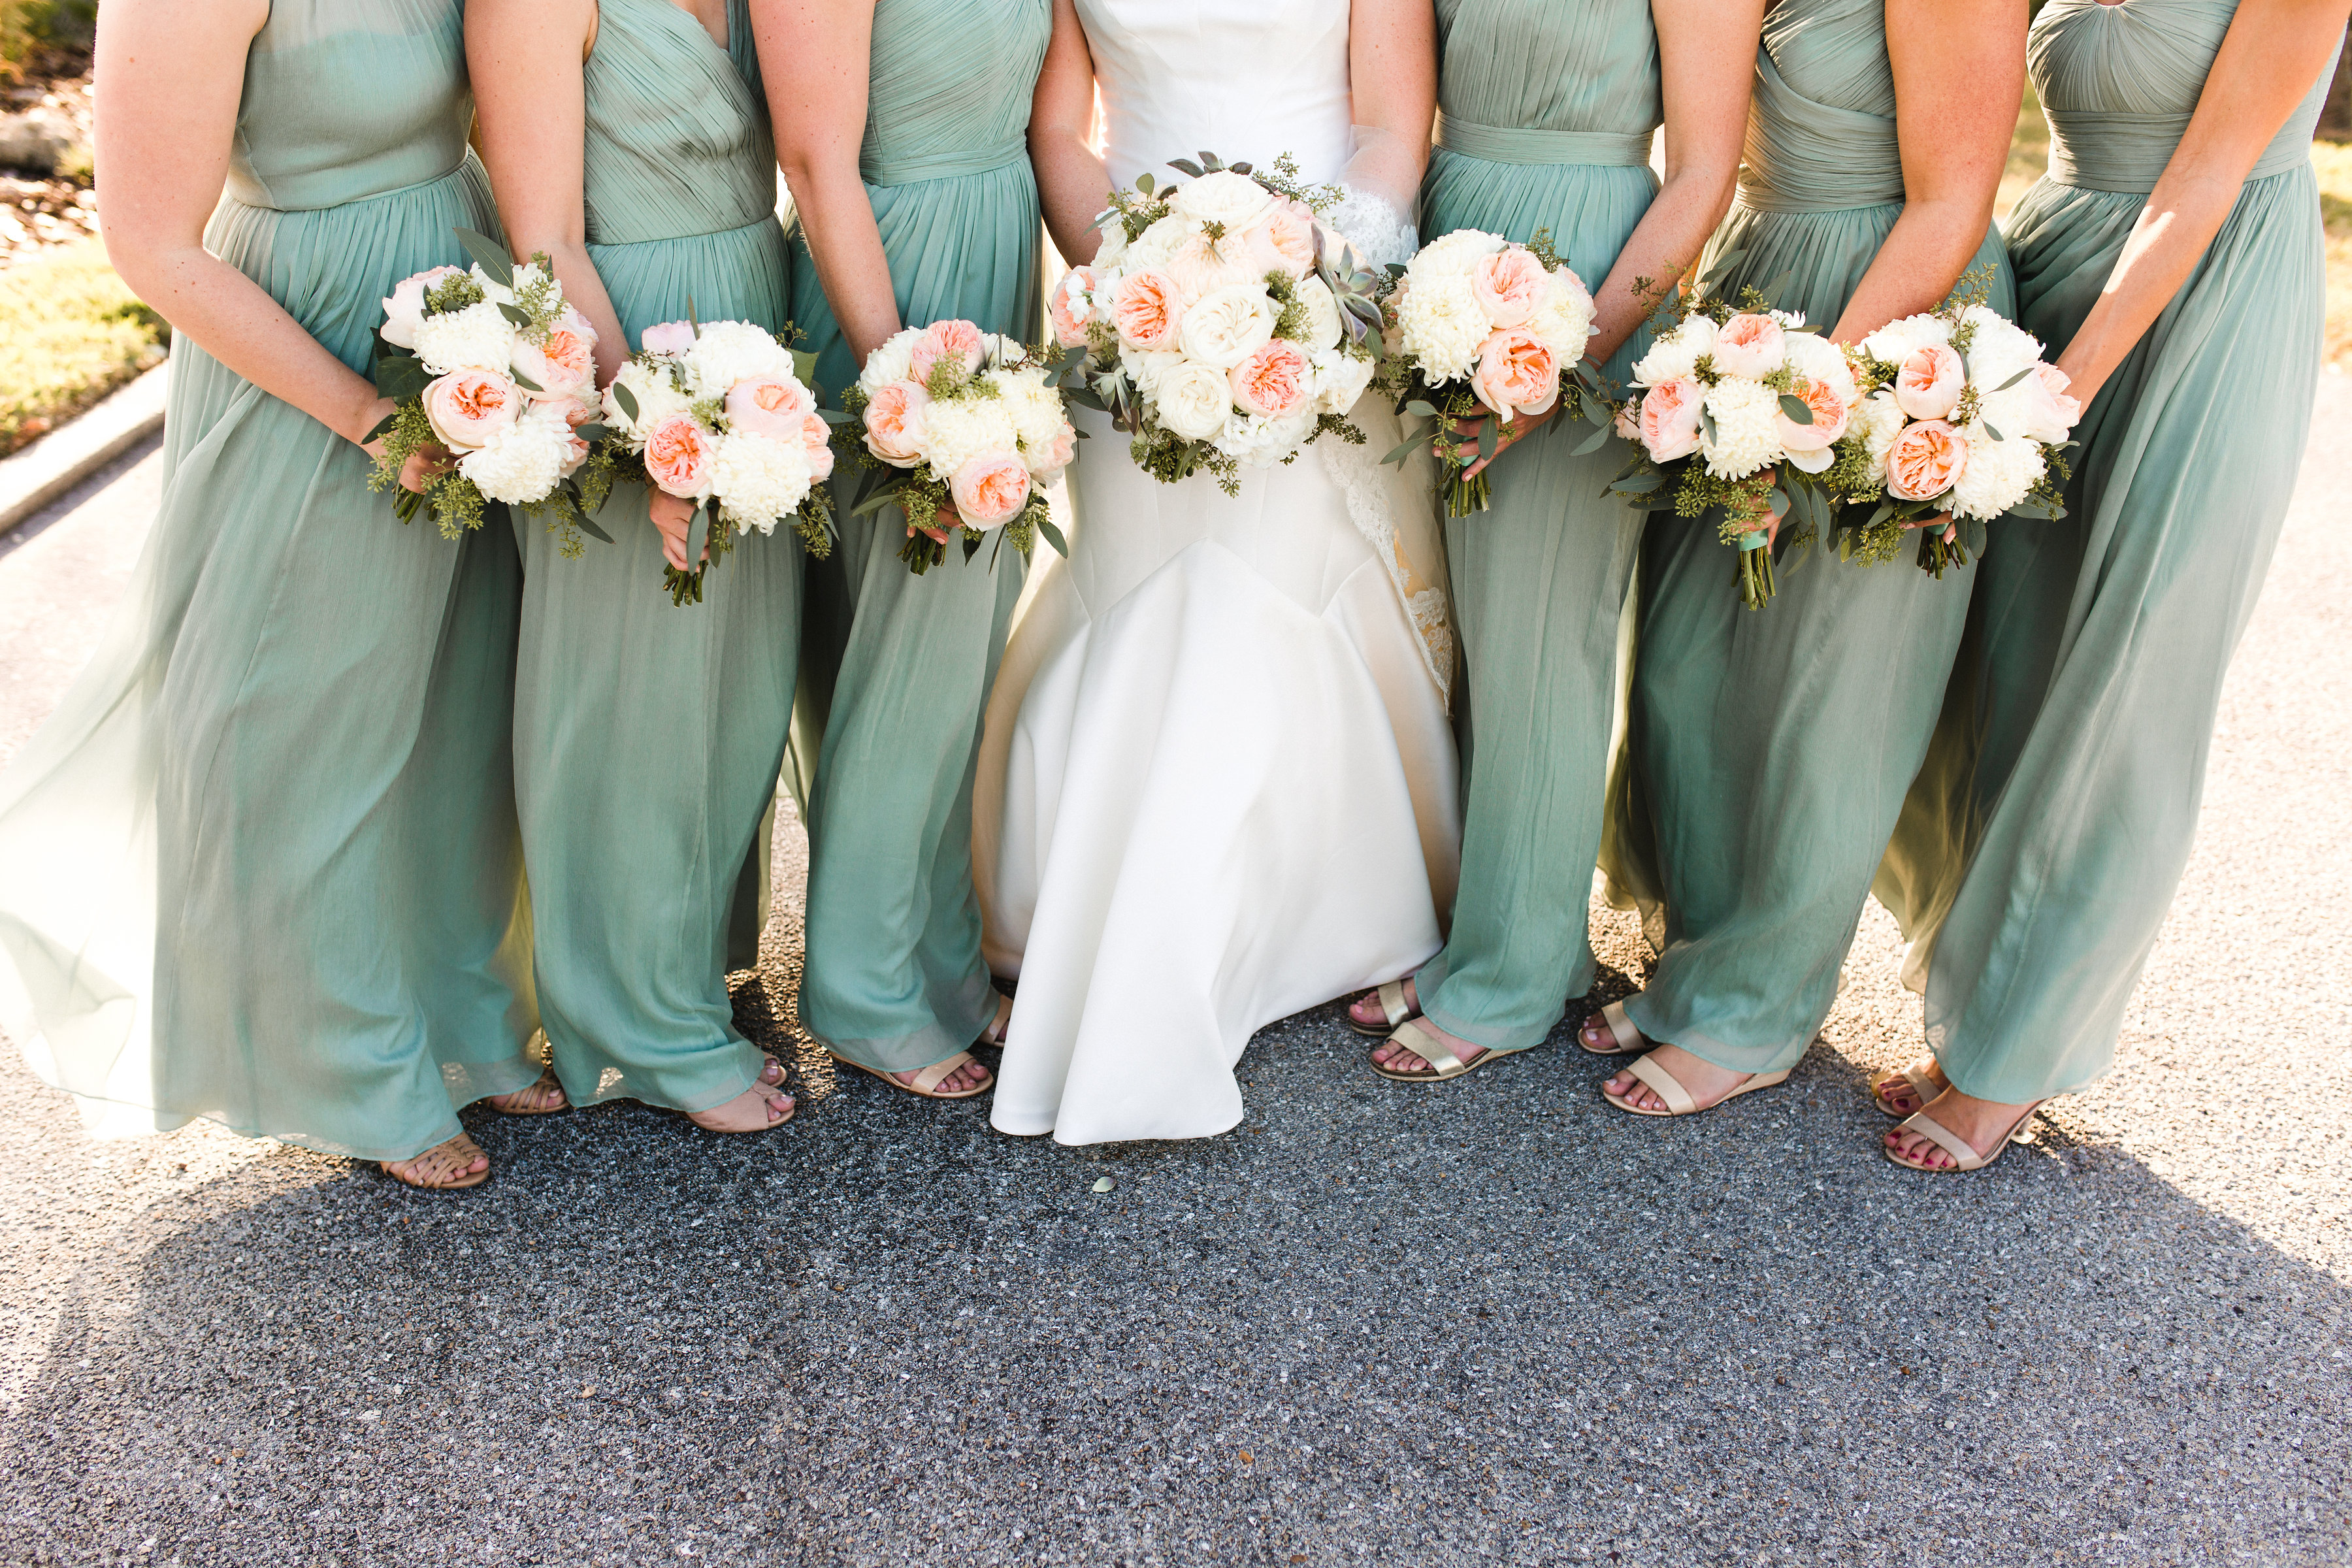 Brides and bridesmaids Bouquets